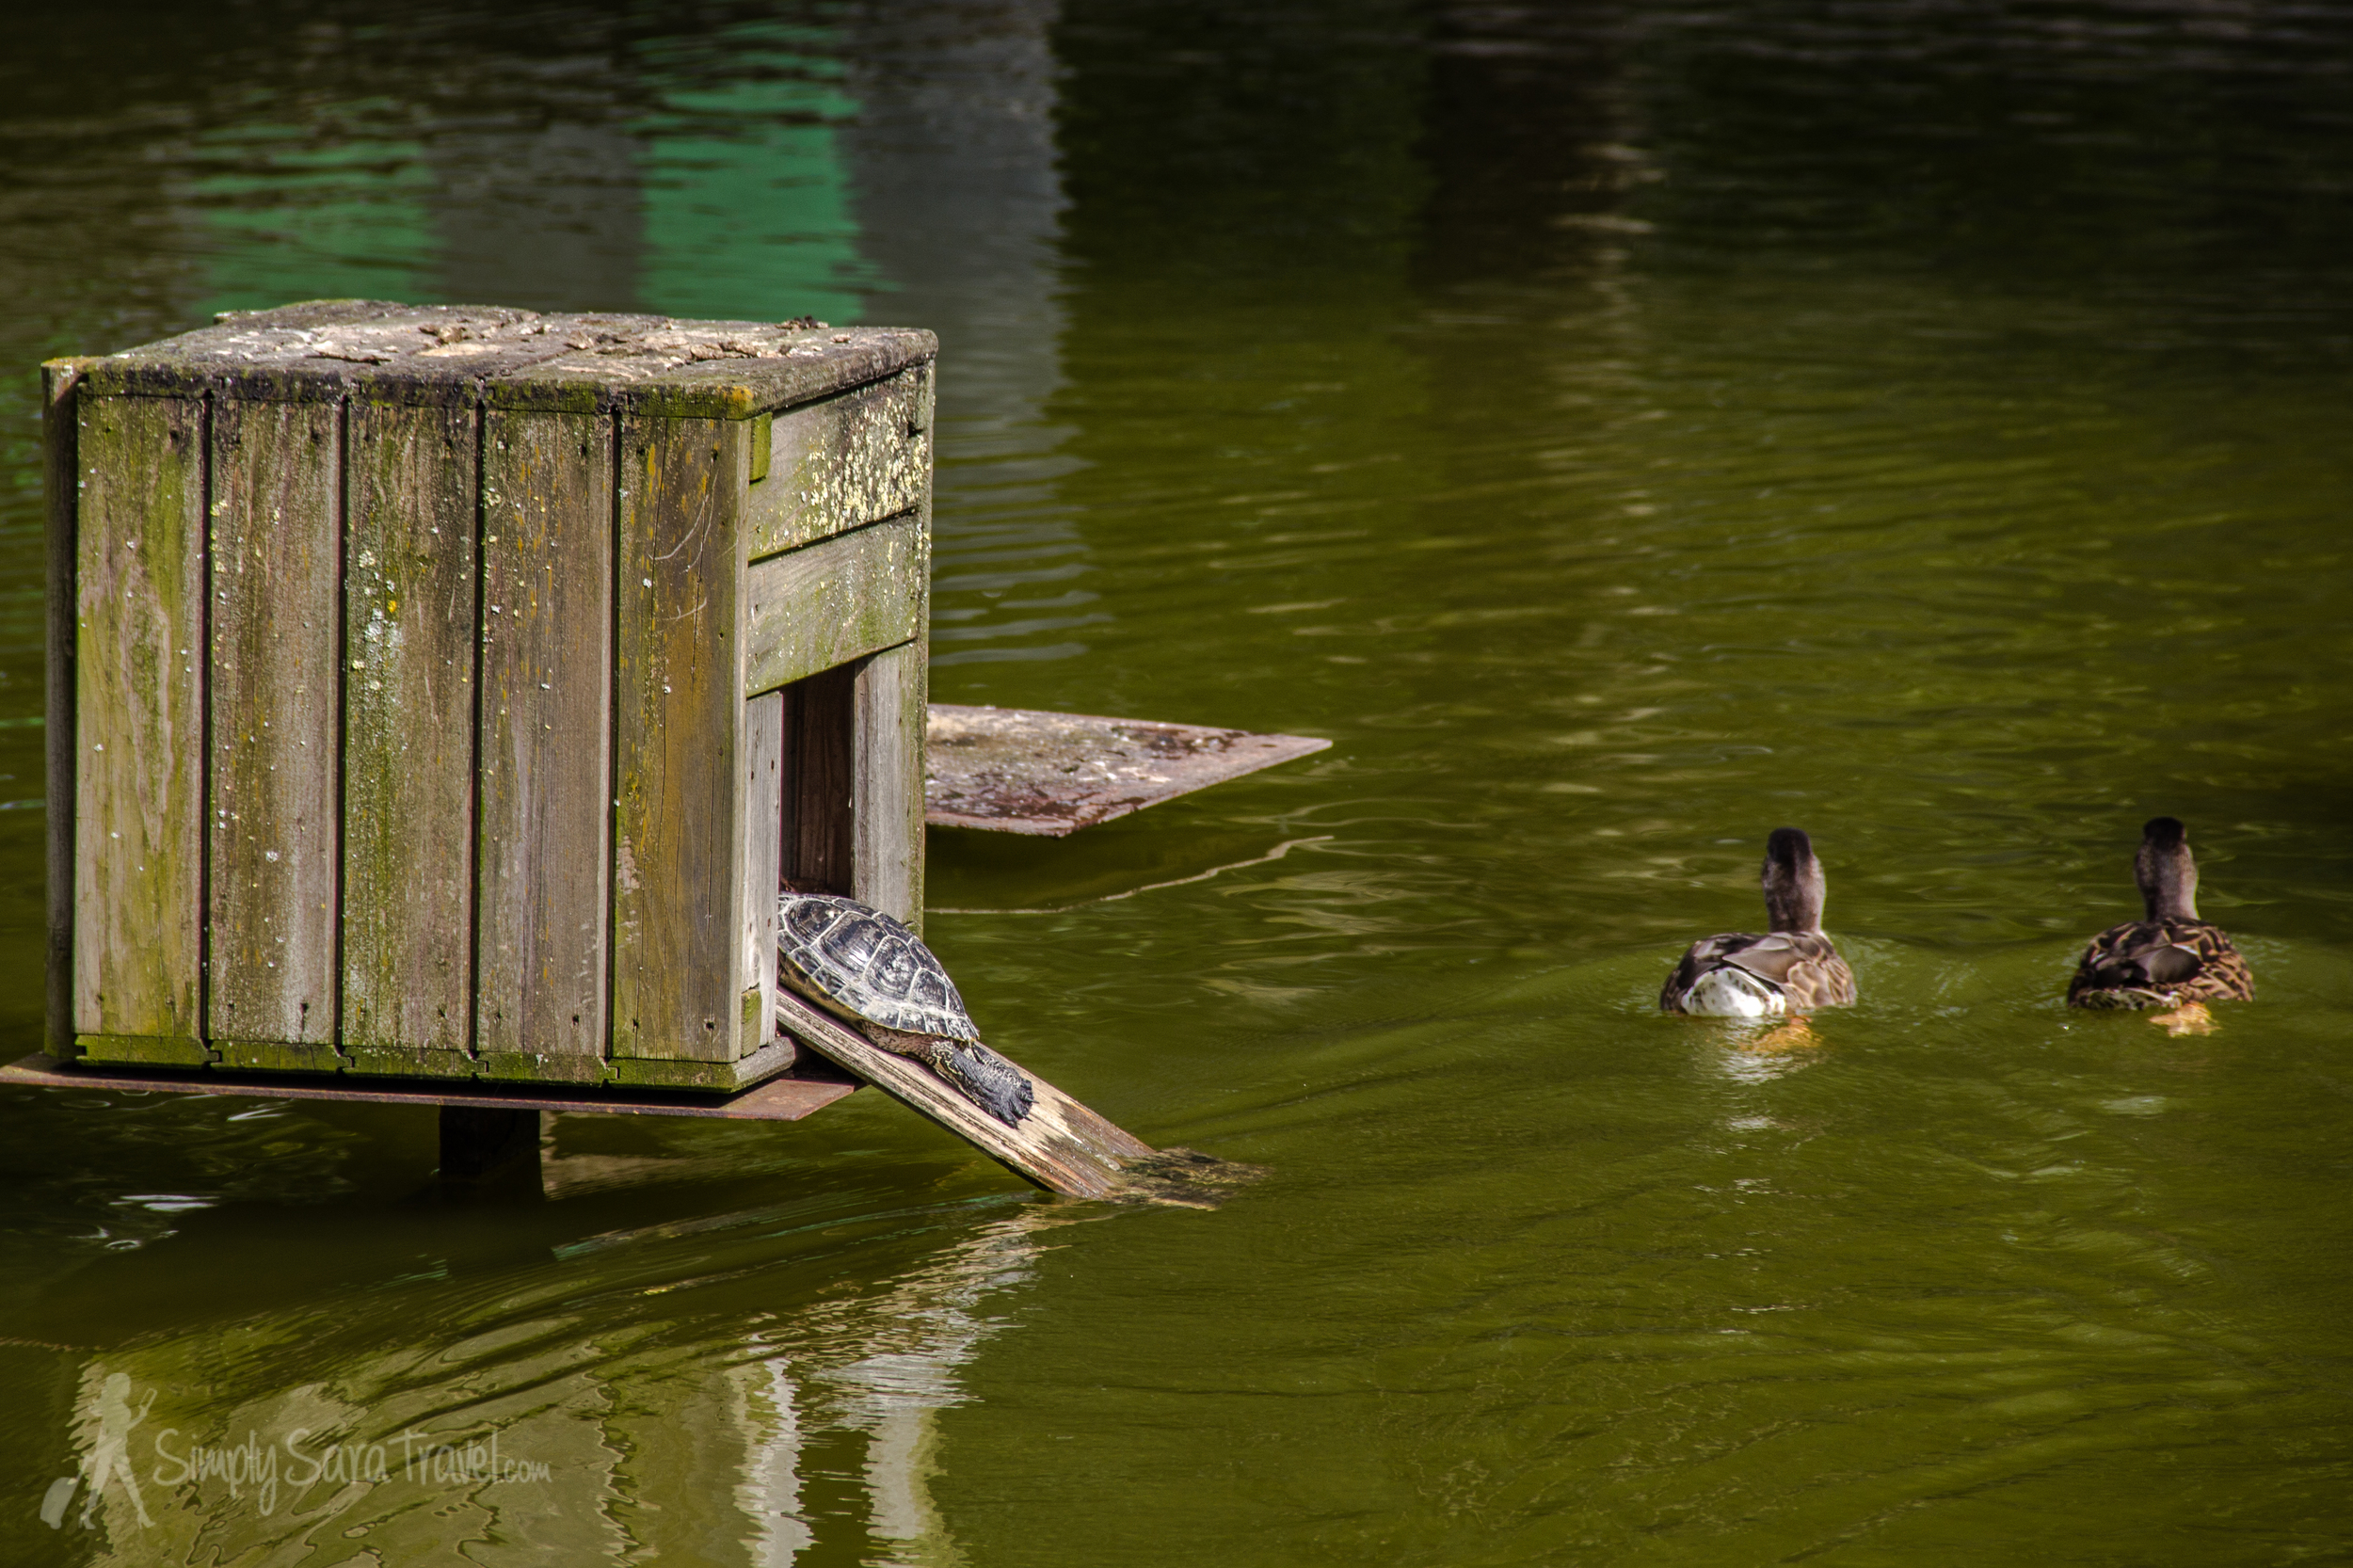 The lake is home to ducks, birds, and cute turtles among other creatures!